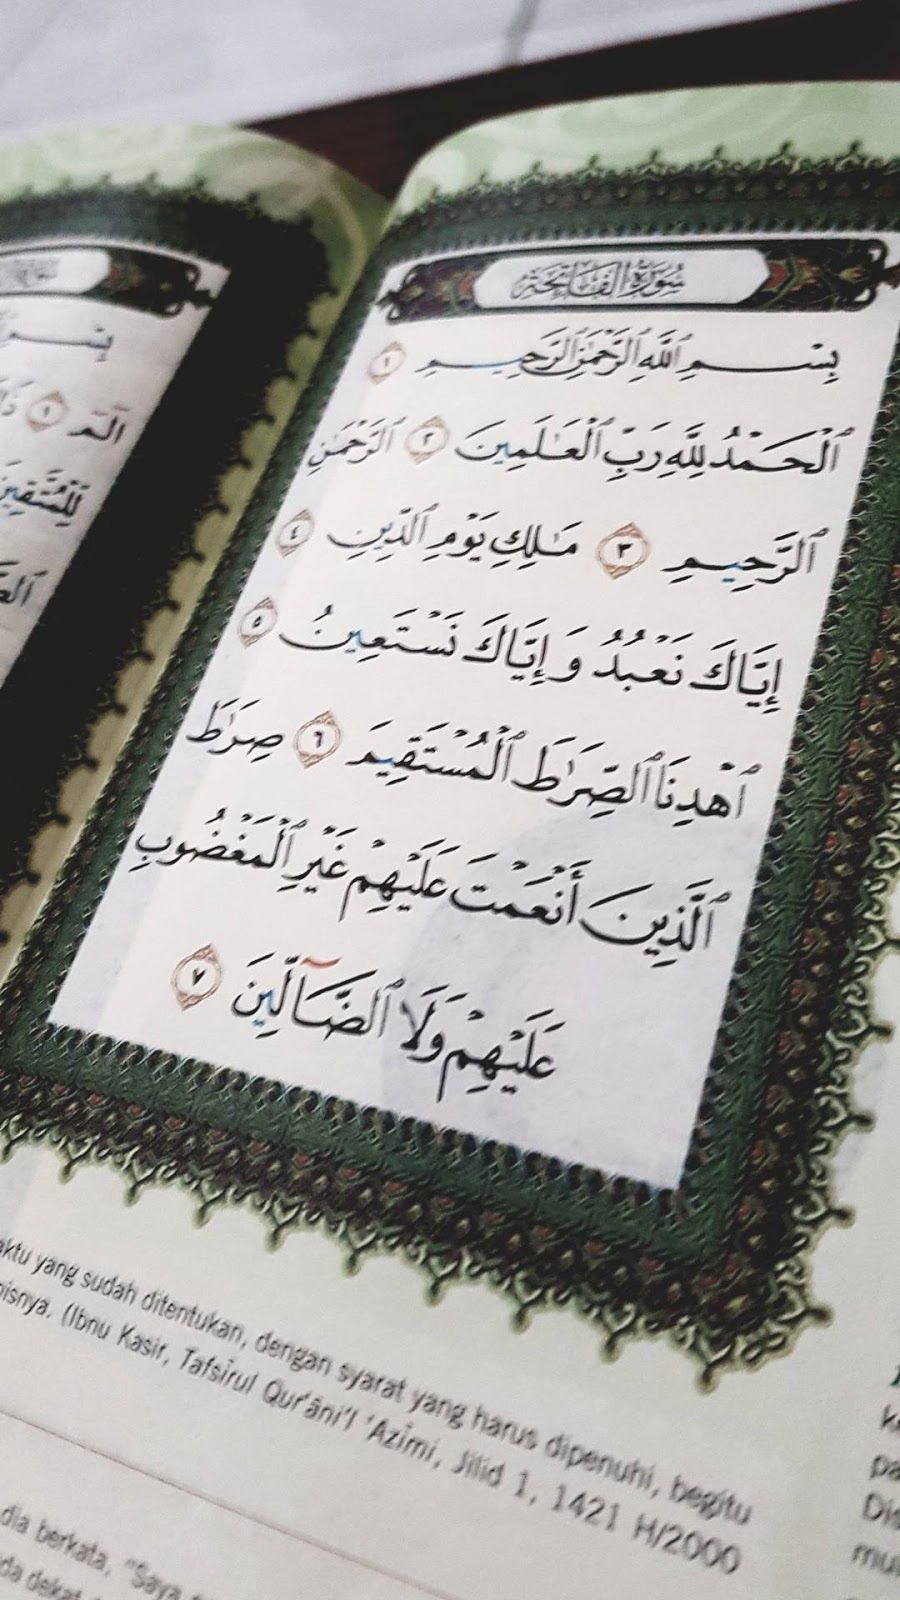 al-fatihah,al fatihah,fatihah,al-fatiha (religious text